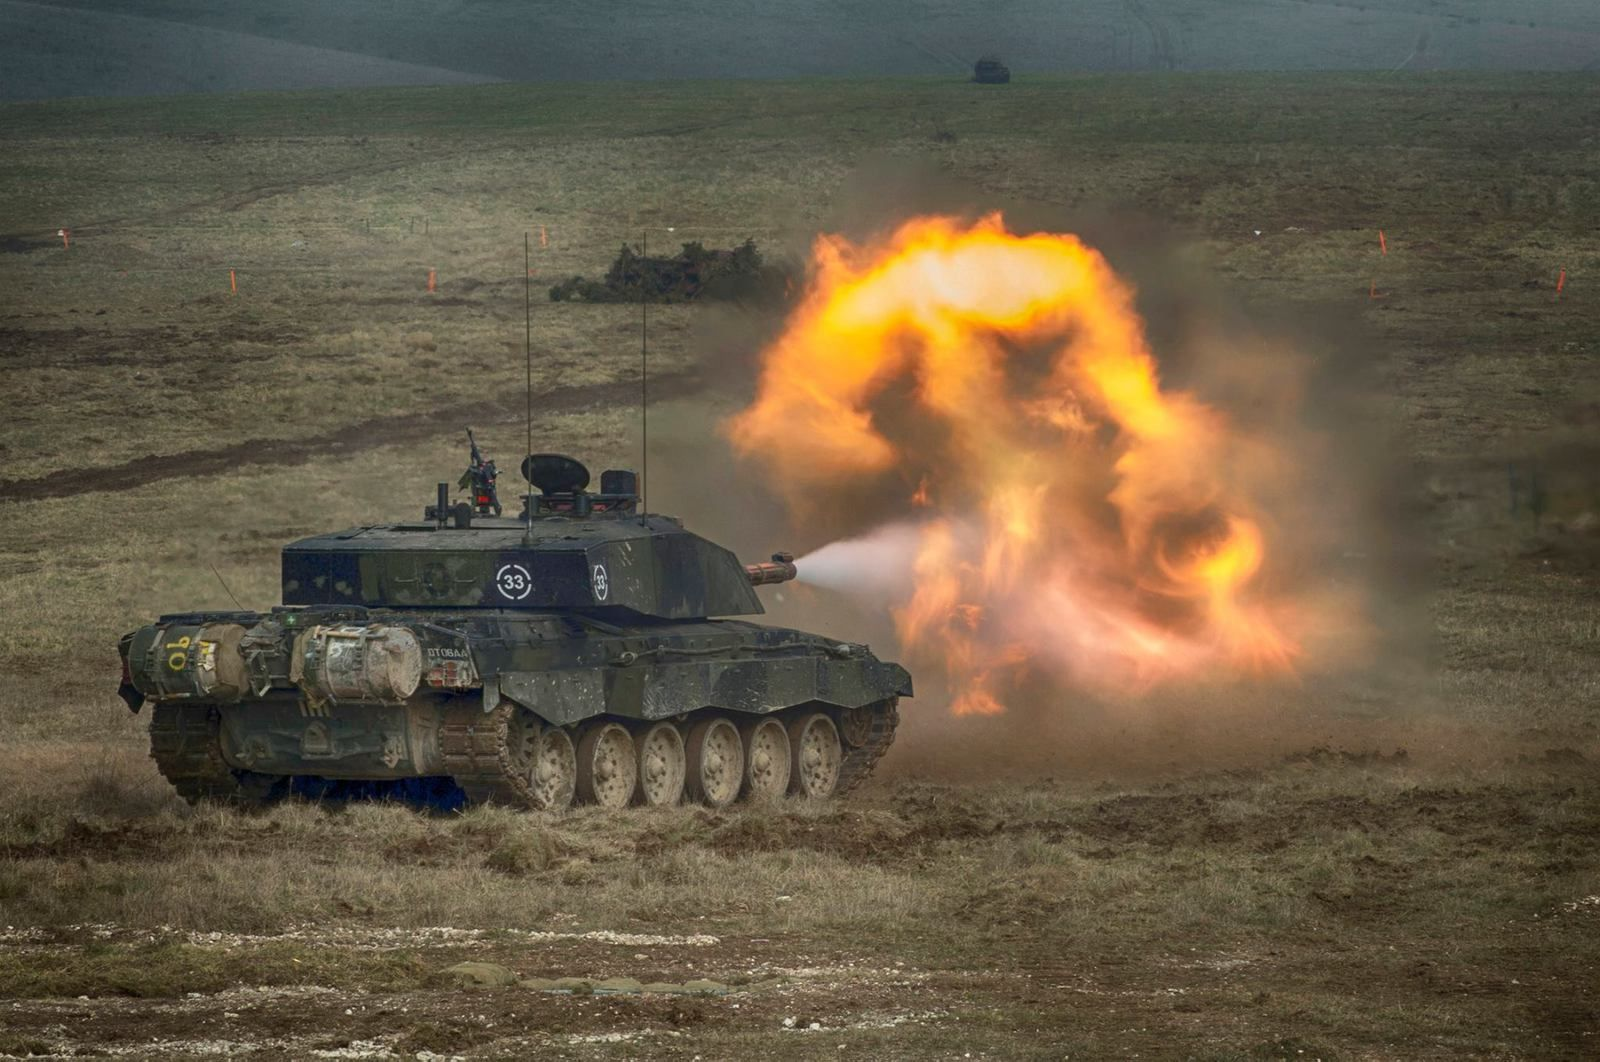 Challenger II tanks will be support by the company under the agreement Photo: British Army - Uk MoD